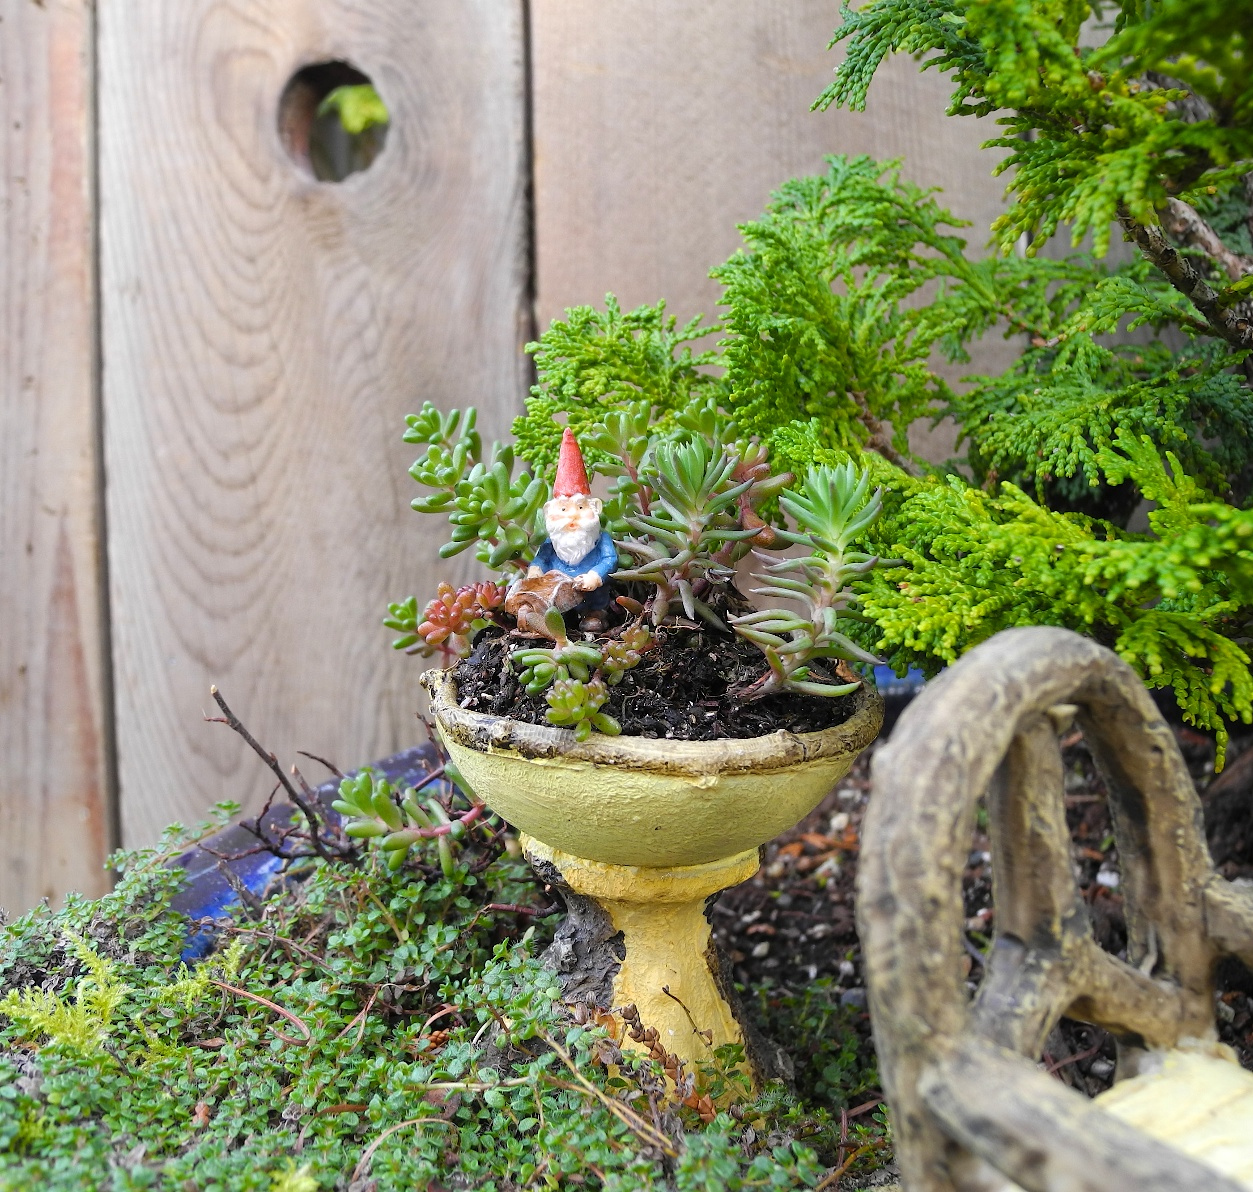 gnome tiny figurine, inside a miniature yellow ceramic dish, seen in close up, succulent fairy garden, placed in a large pot with different plants and ornaments